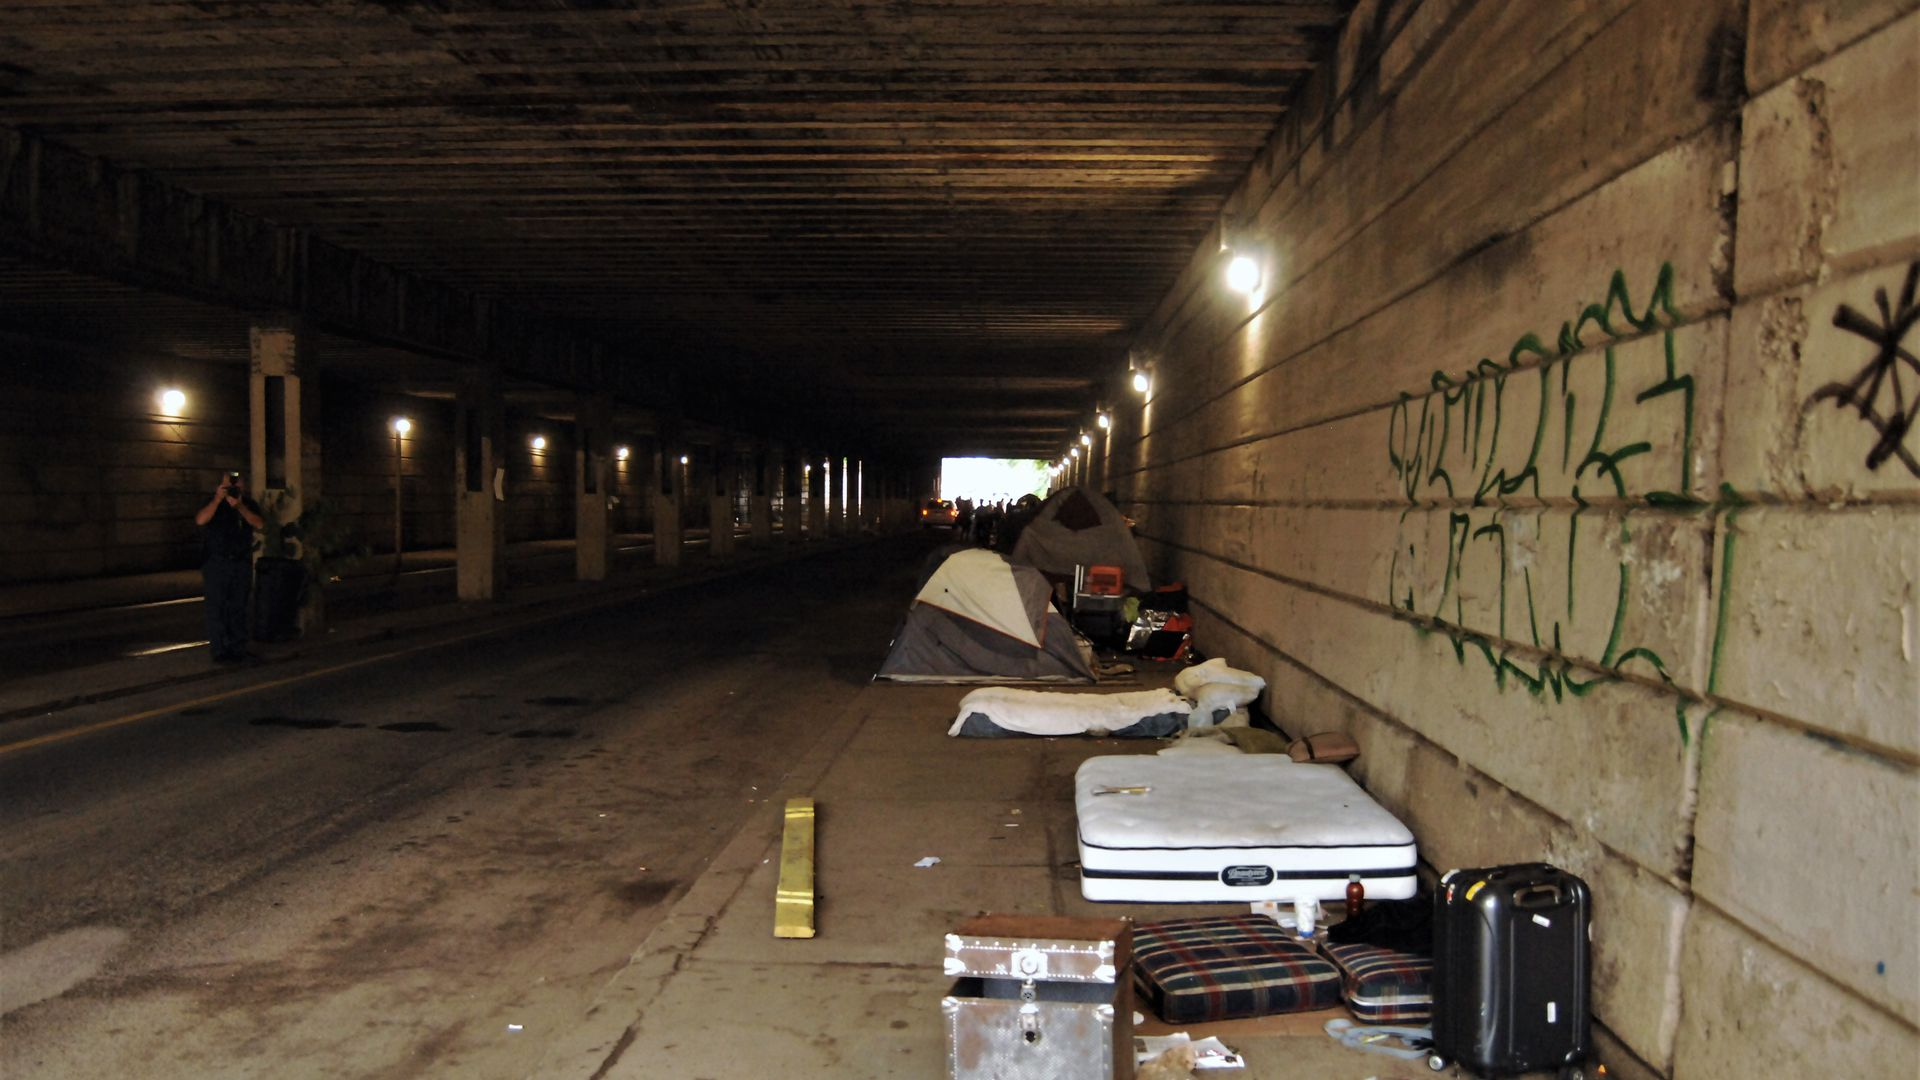 Makeshift beds for homeless people under a highway